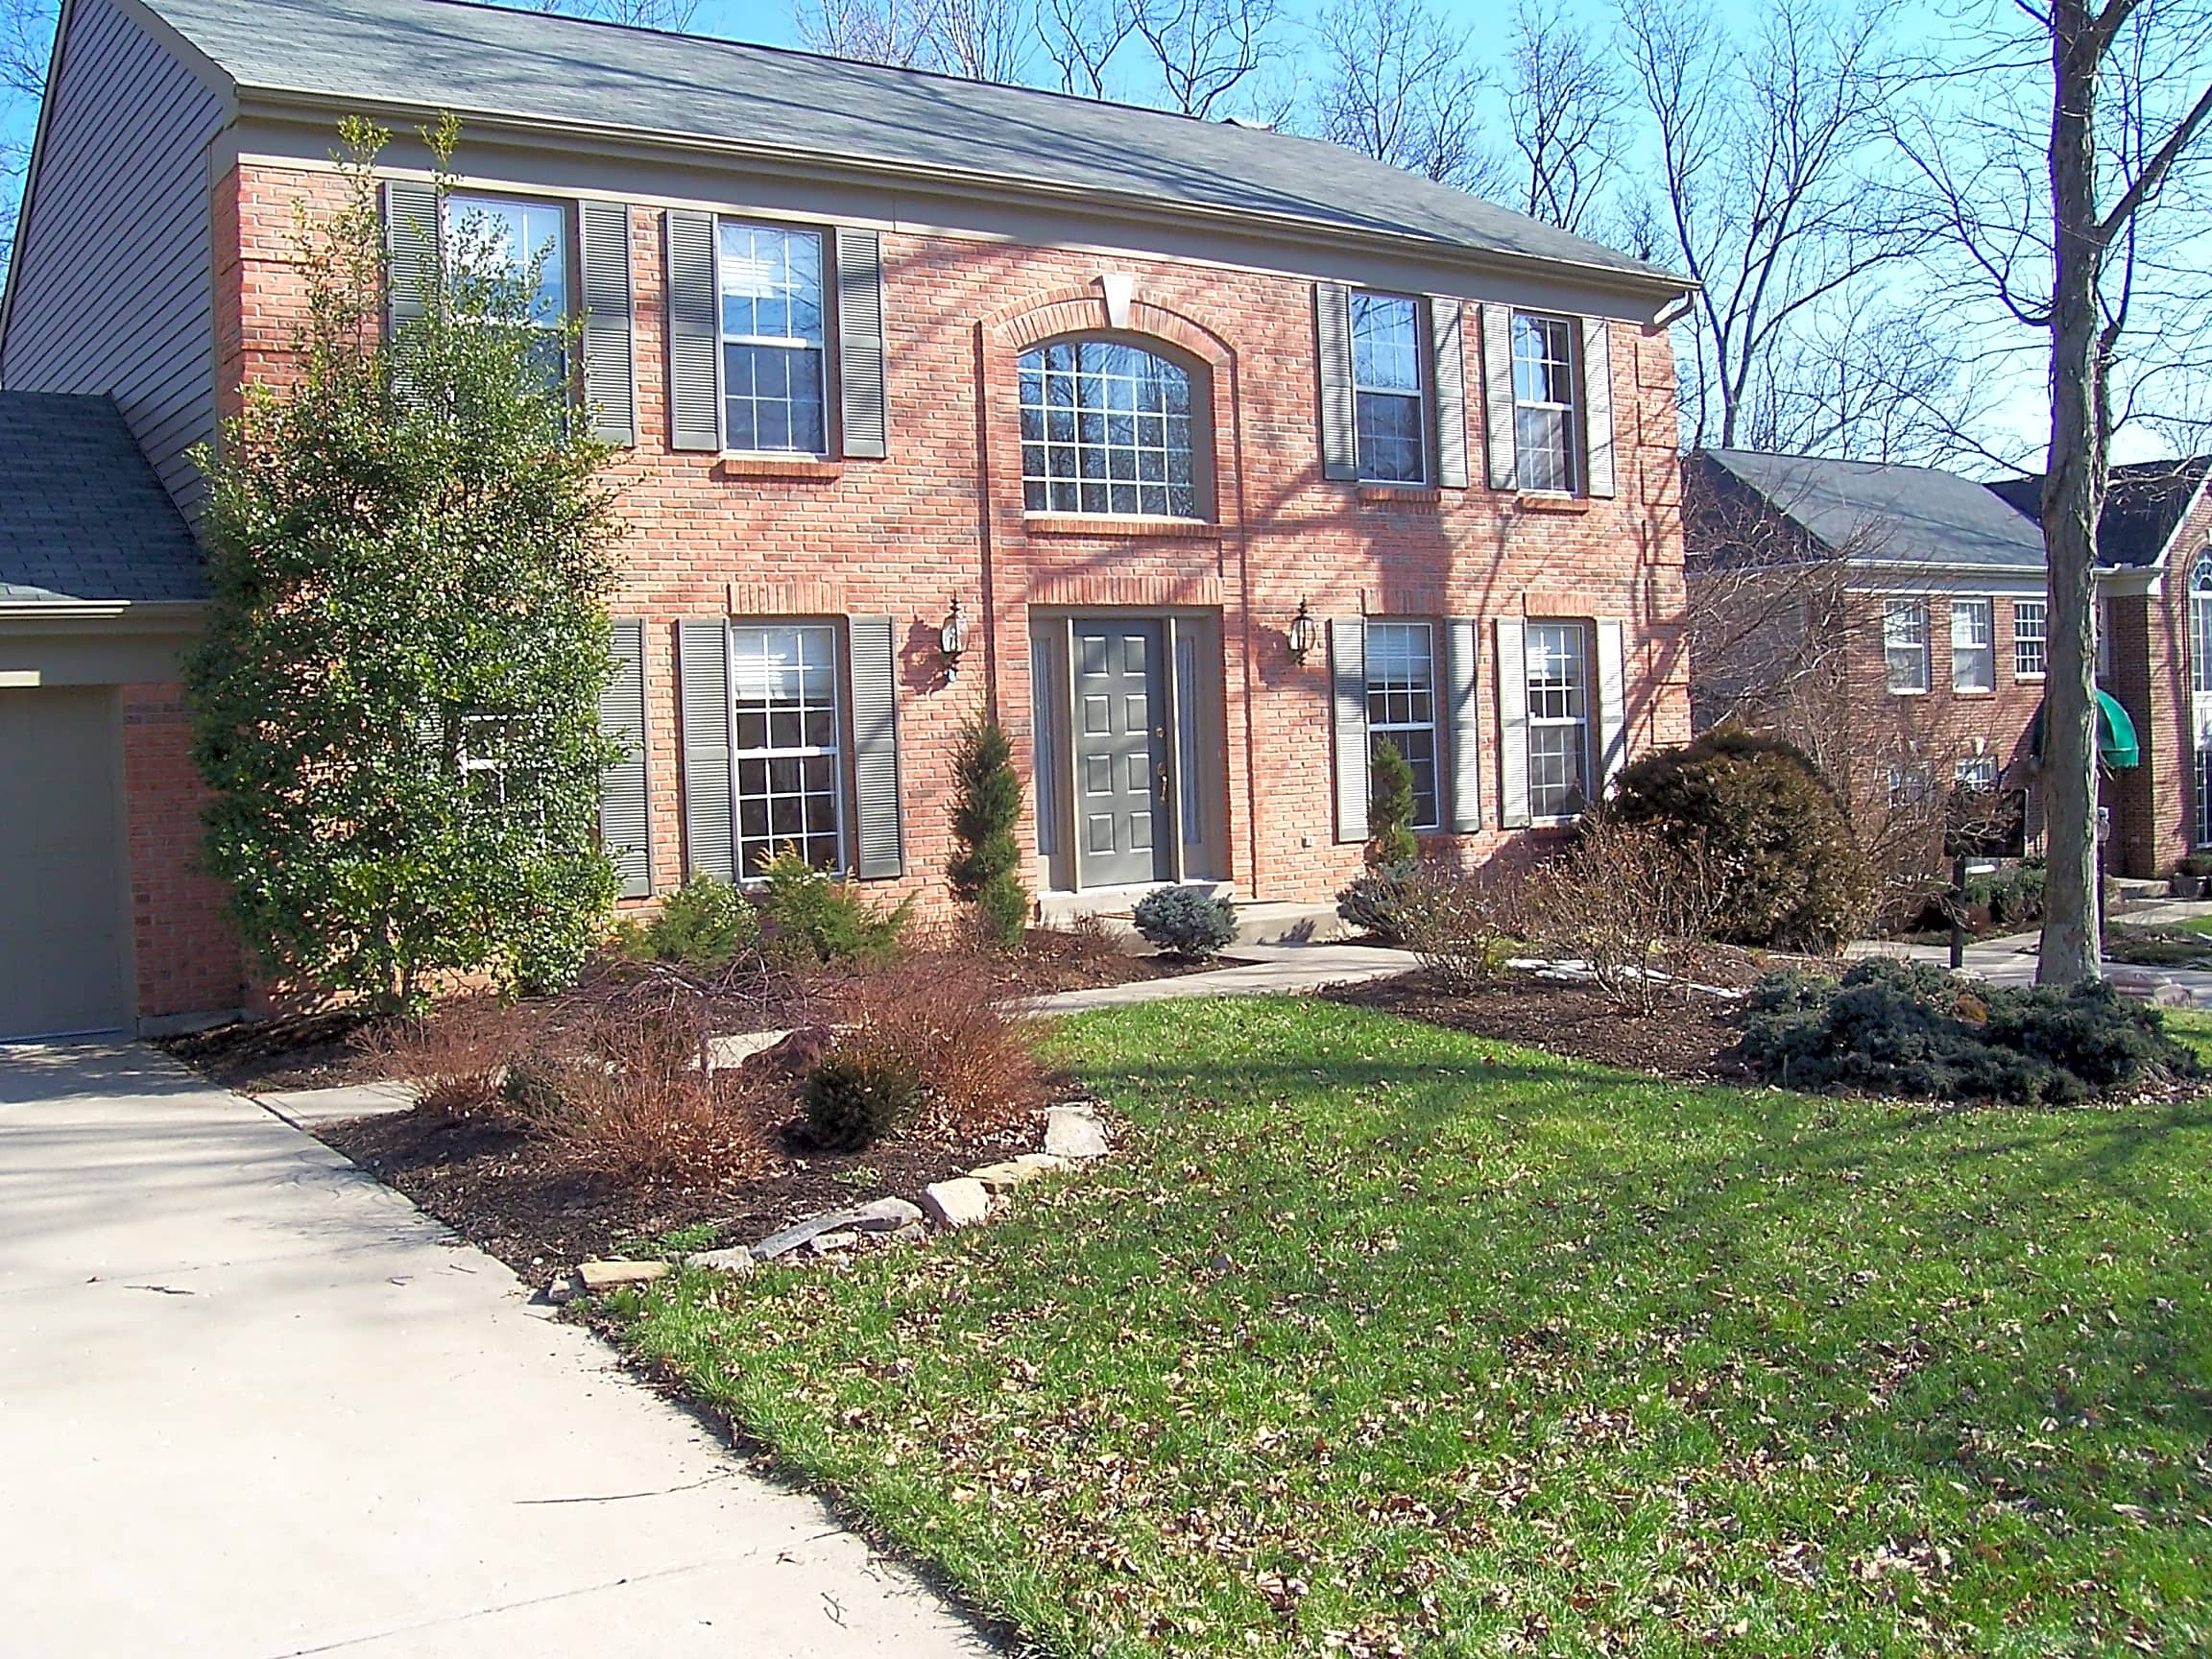 House for Rent in Union